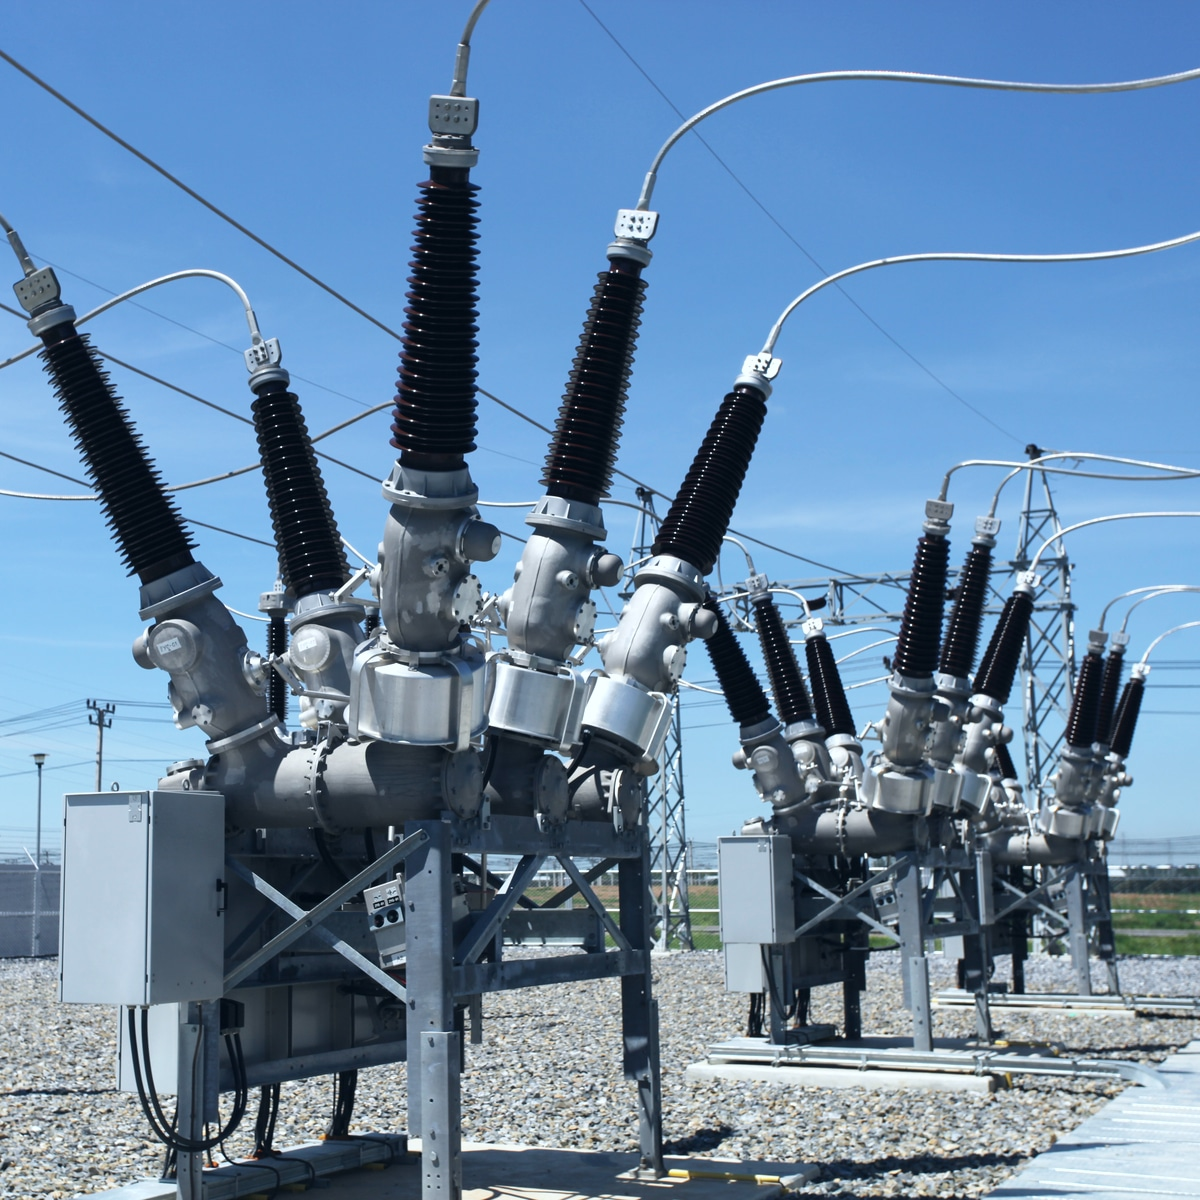 Vgg systems   High Voltage, PV Solar, Microgrids, Charging Infrastructure